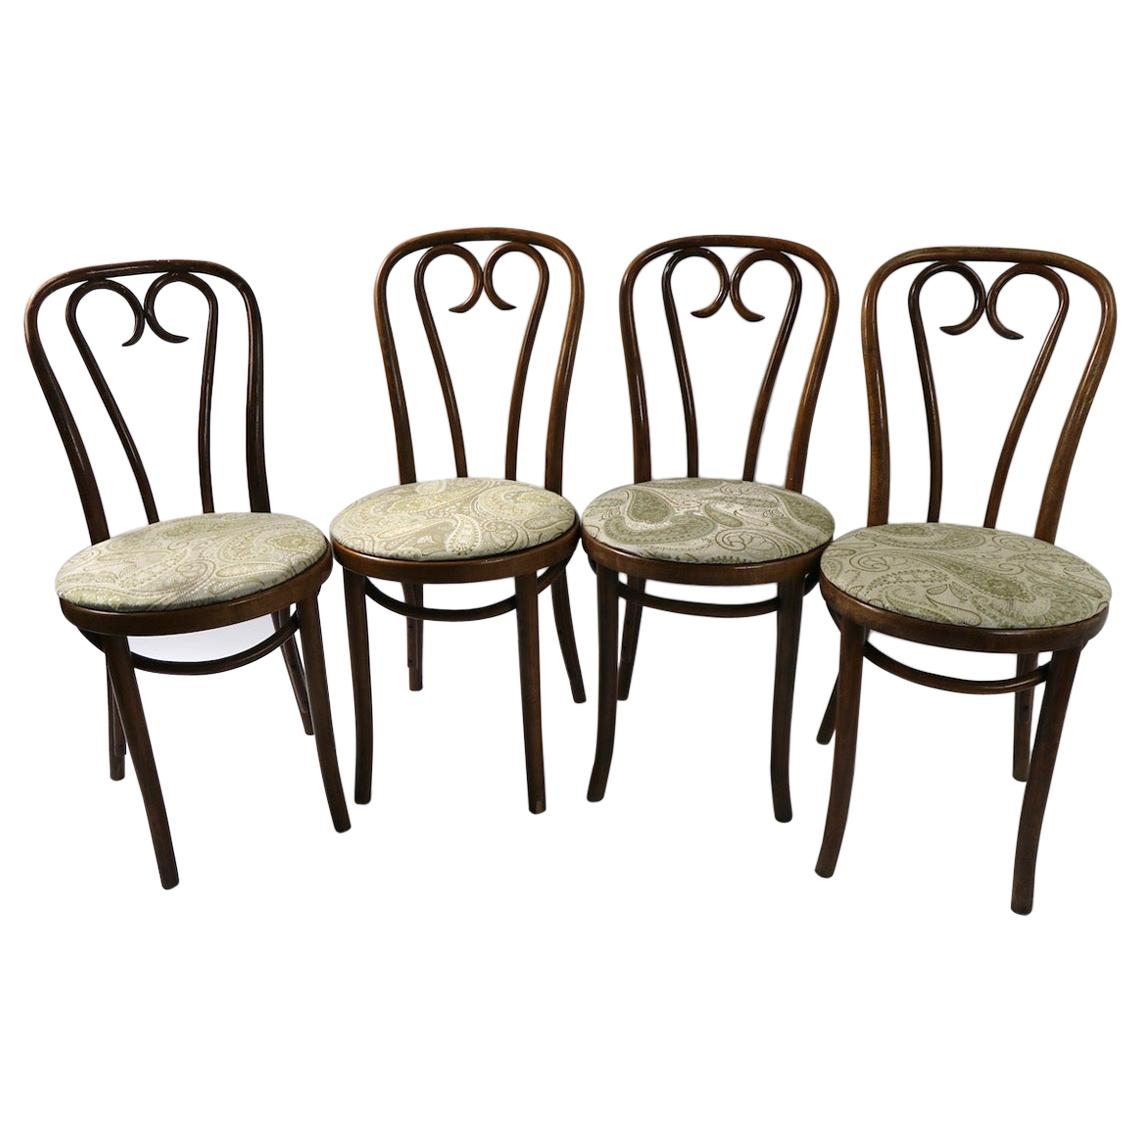 Set of 2 Bentwood Cafe Chairs Attributed to Thonet